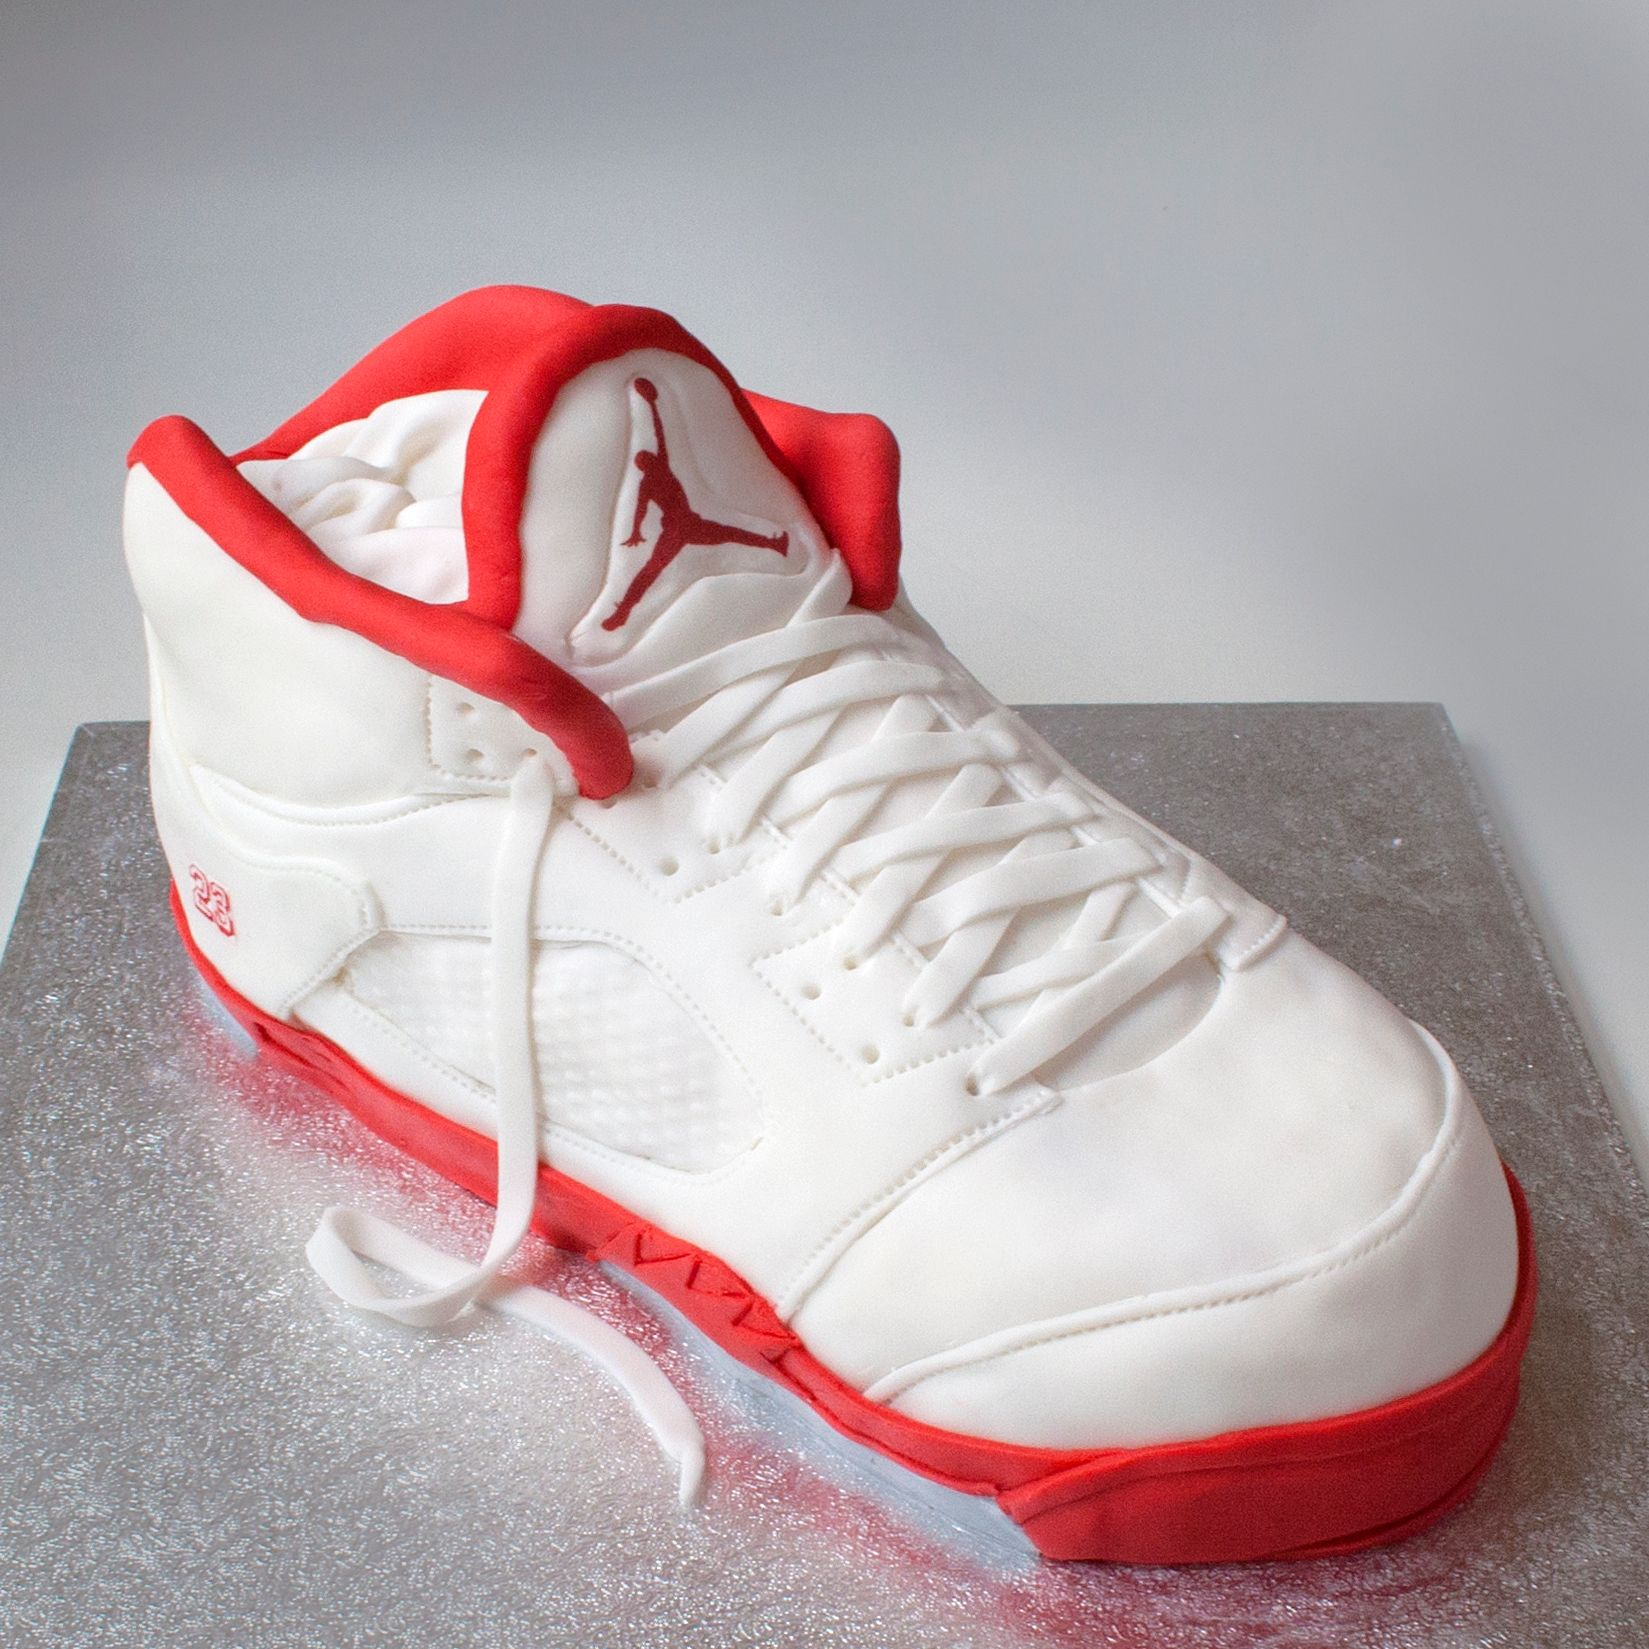 Illusion  Shoe Cake Trainer Nike Air Jordan